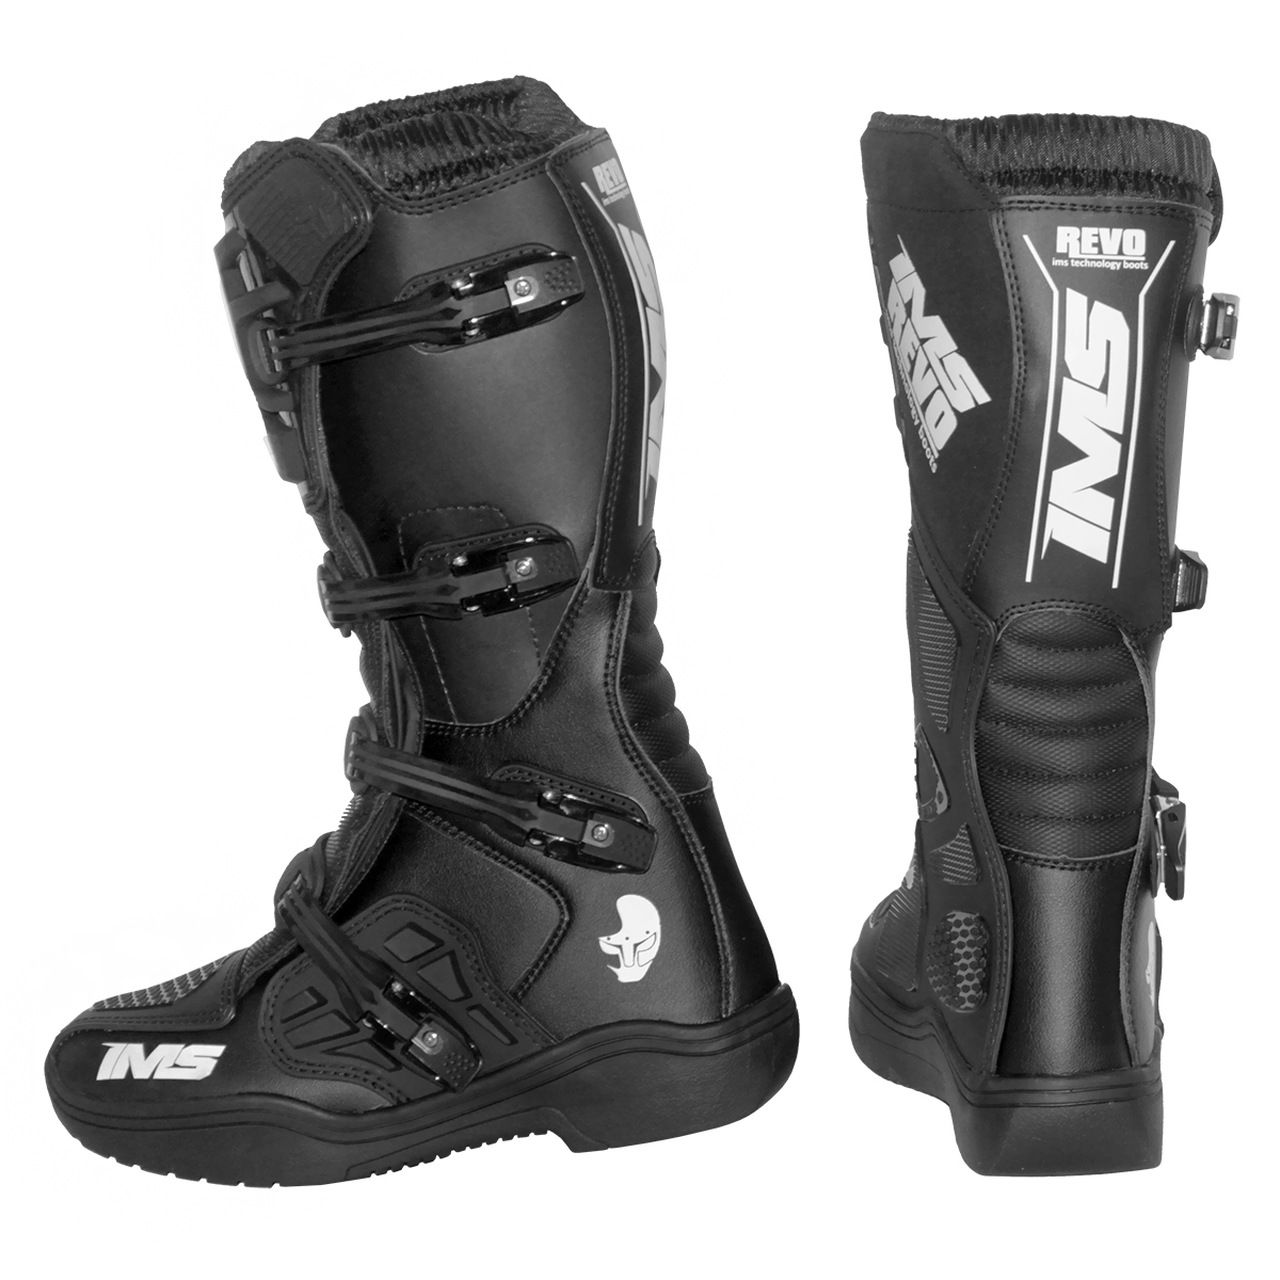 Bota IMS New Top Revolution